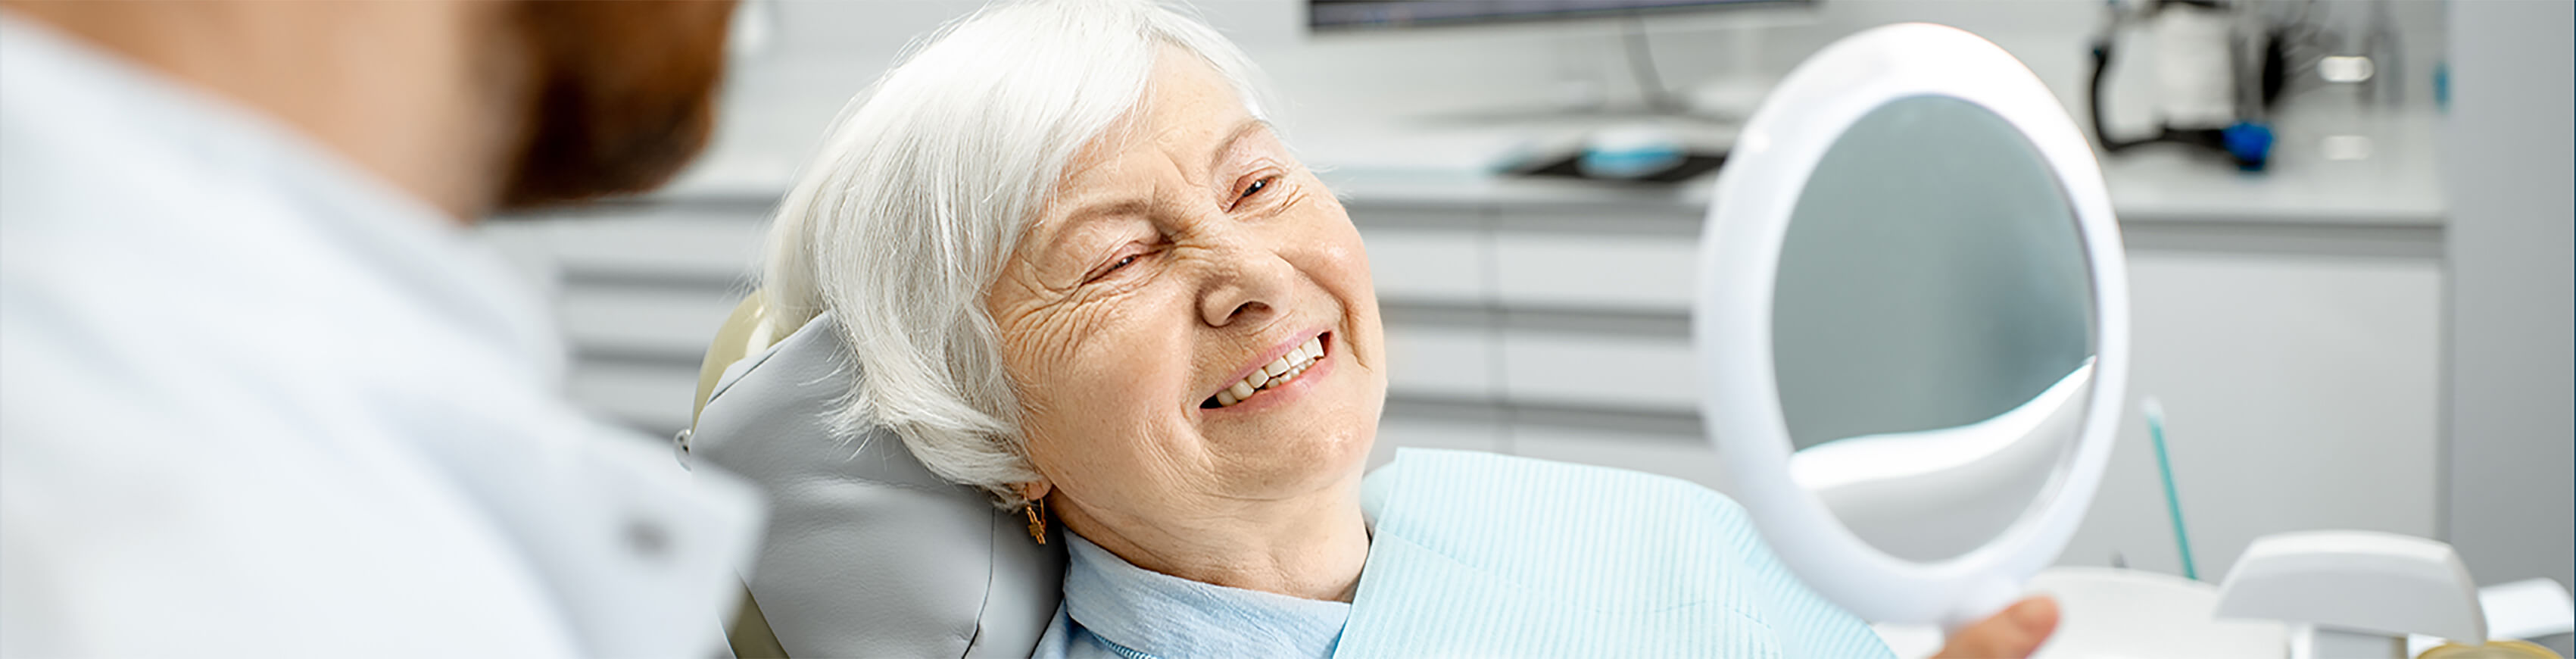 Dentures for Adults in the PNW